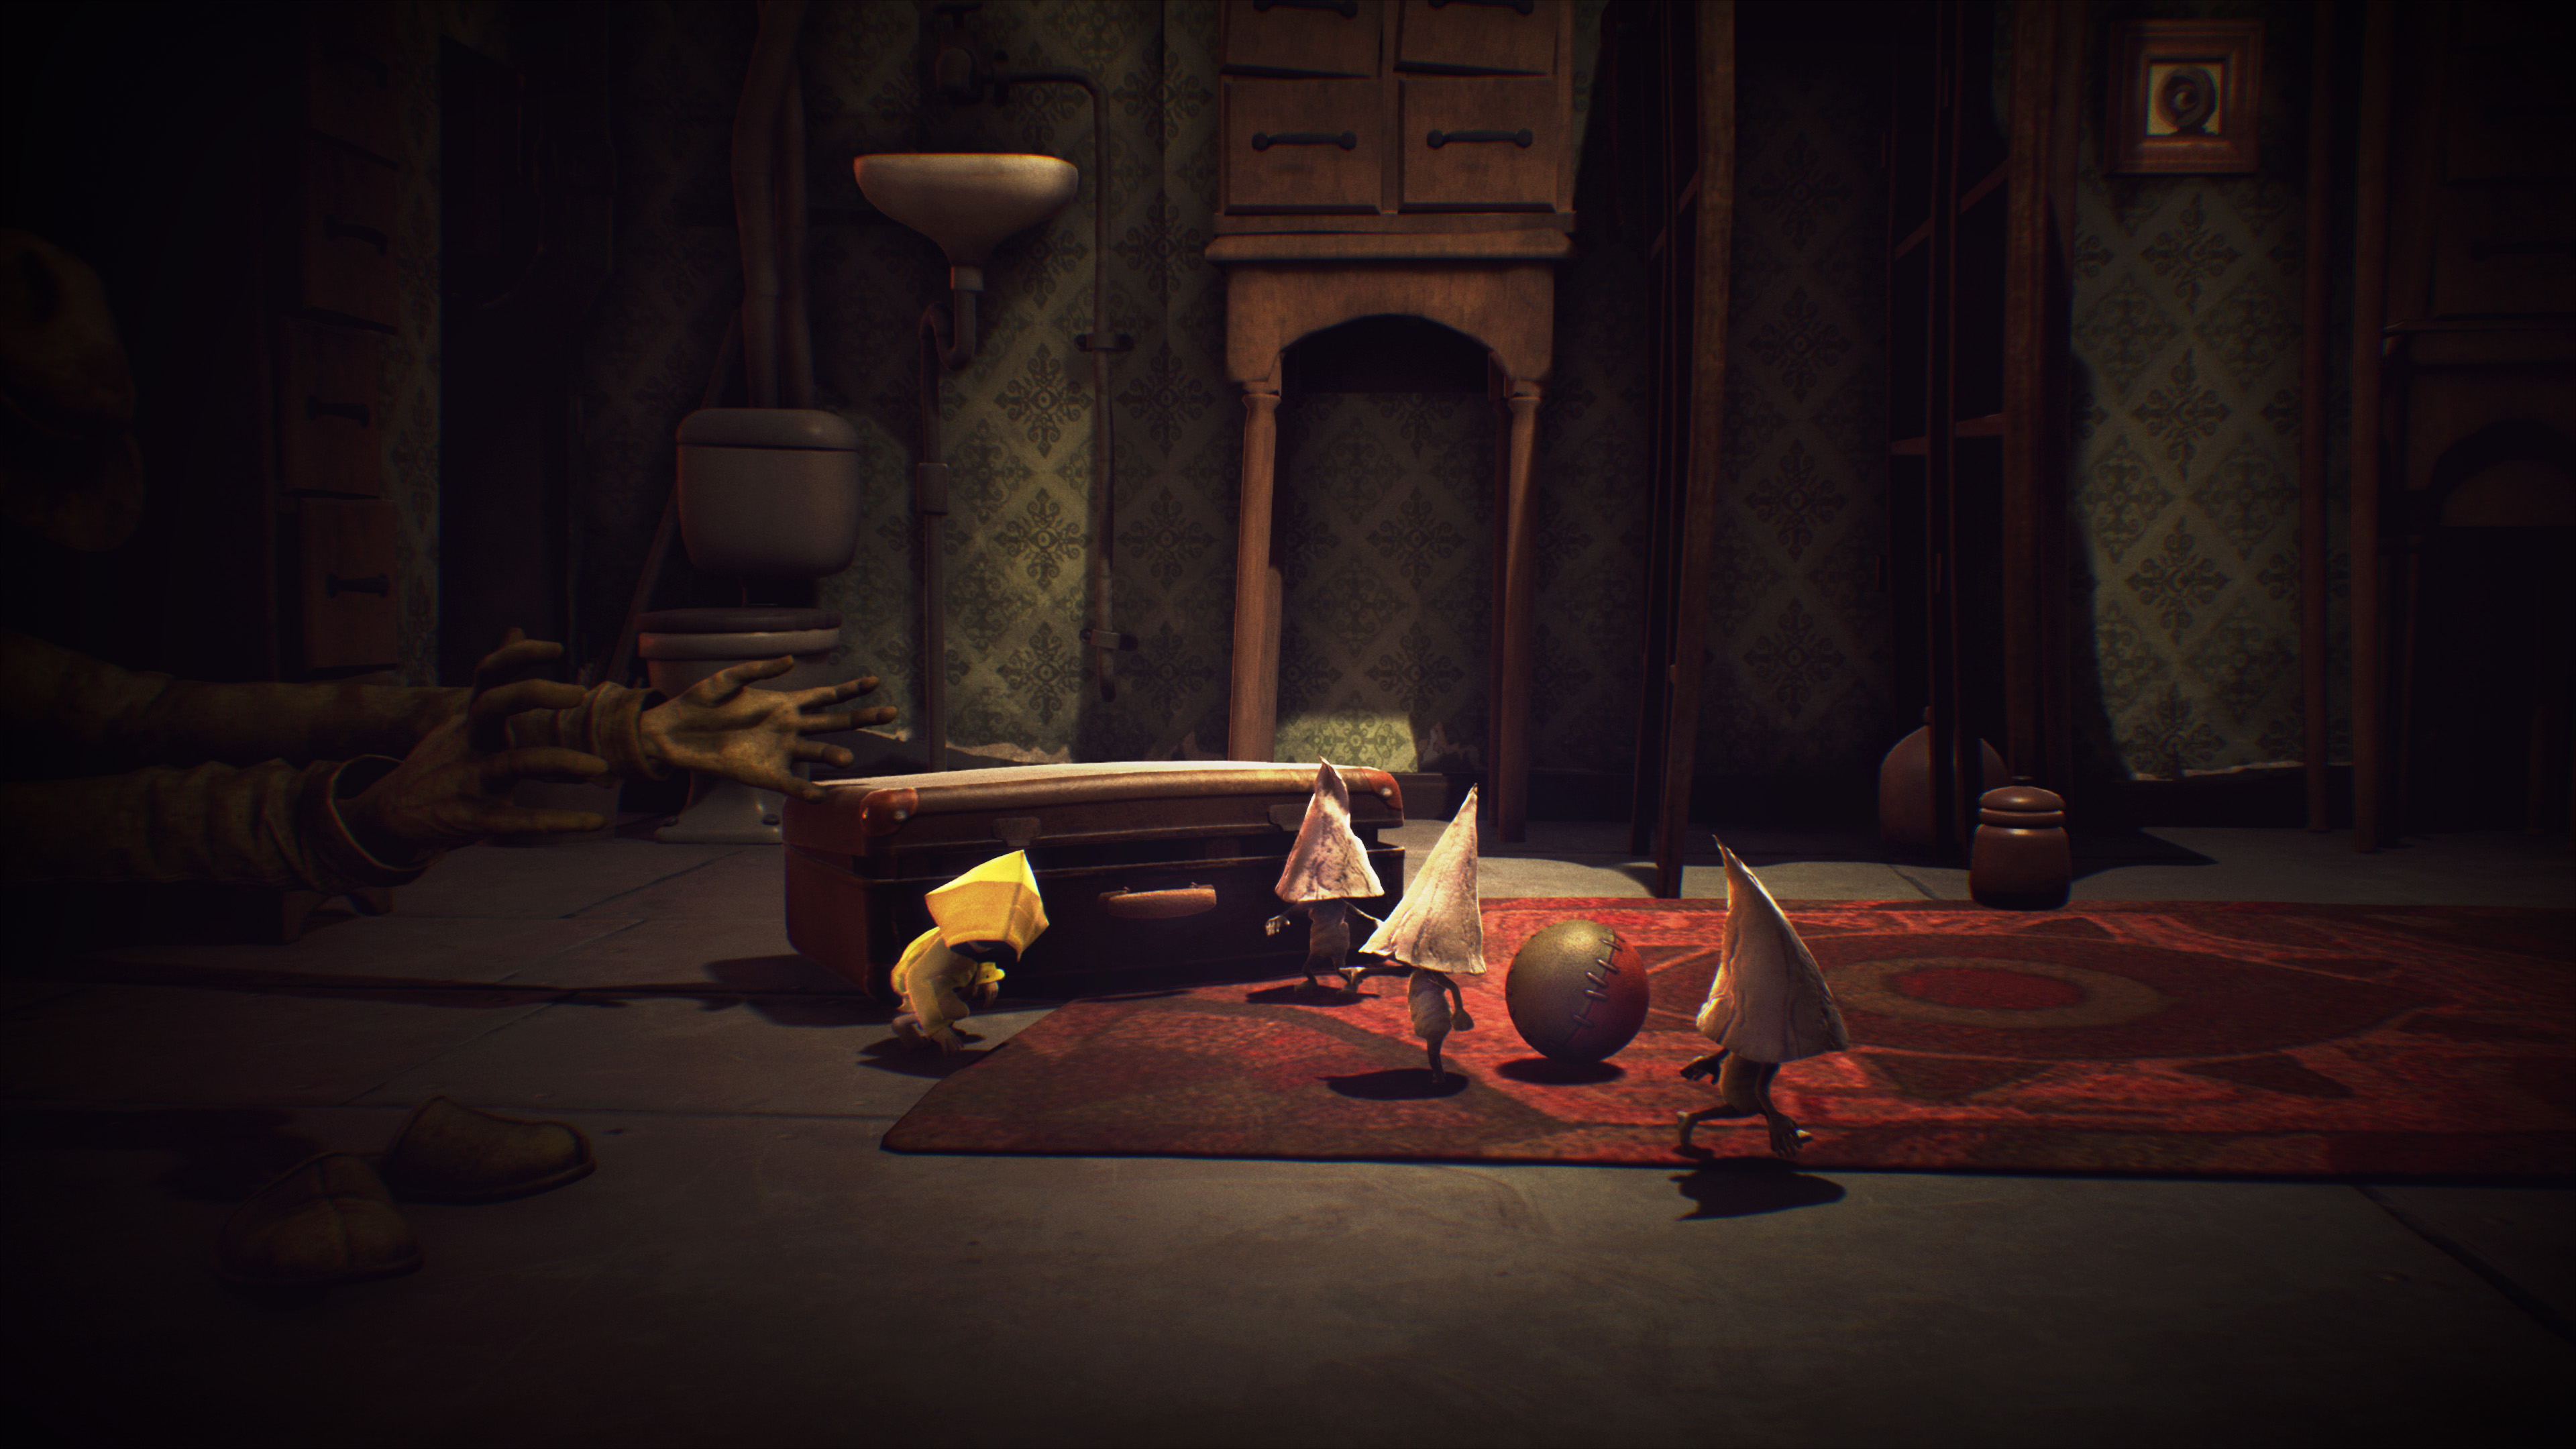 The Nome creatures Six comes across during her adventures in Little Nightmares.